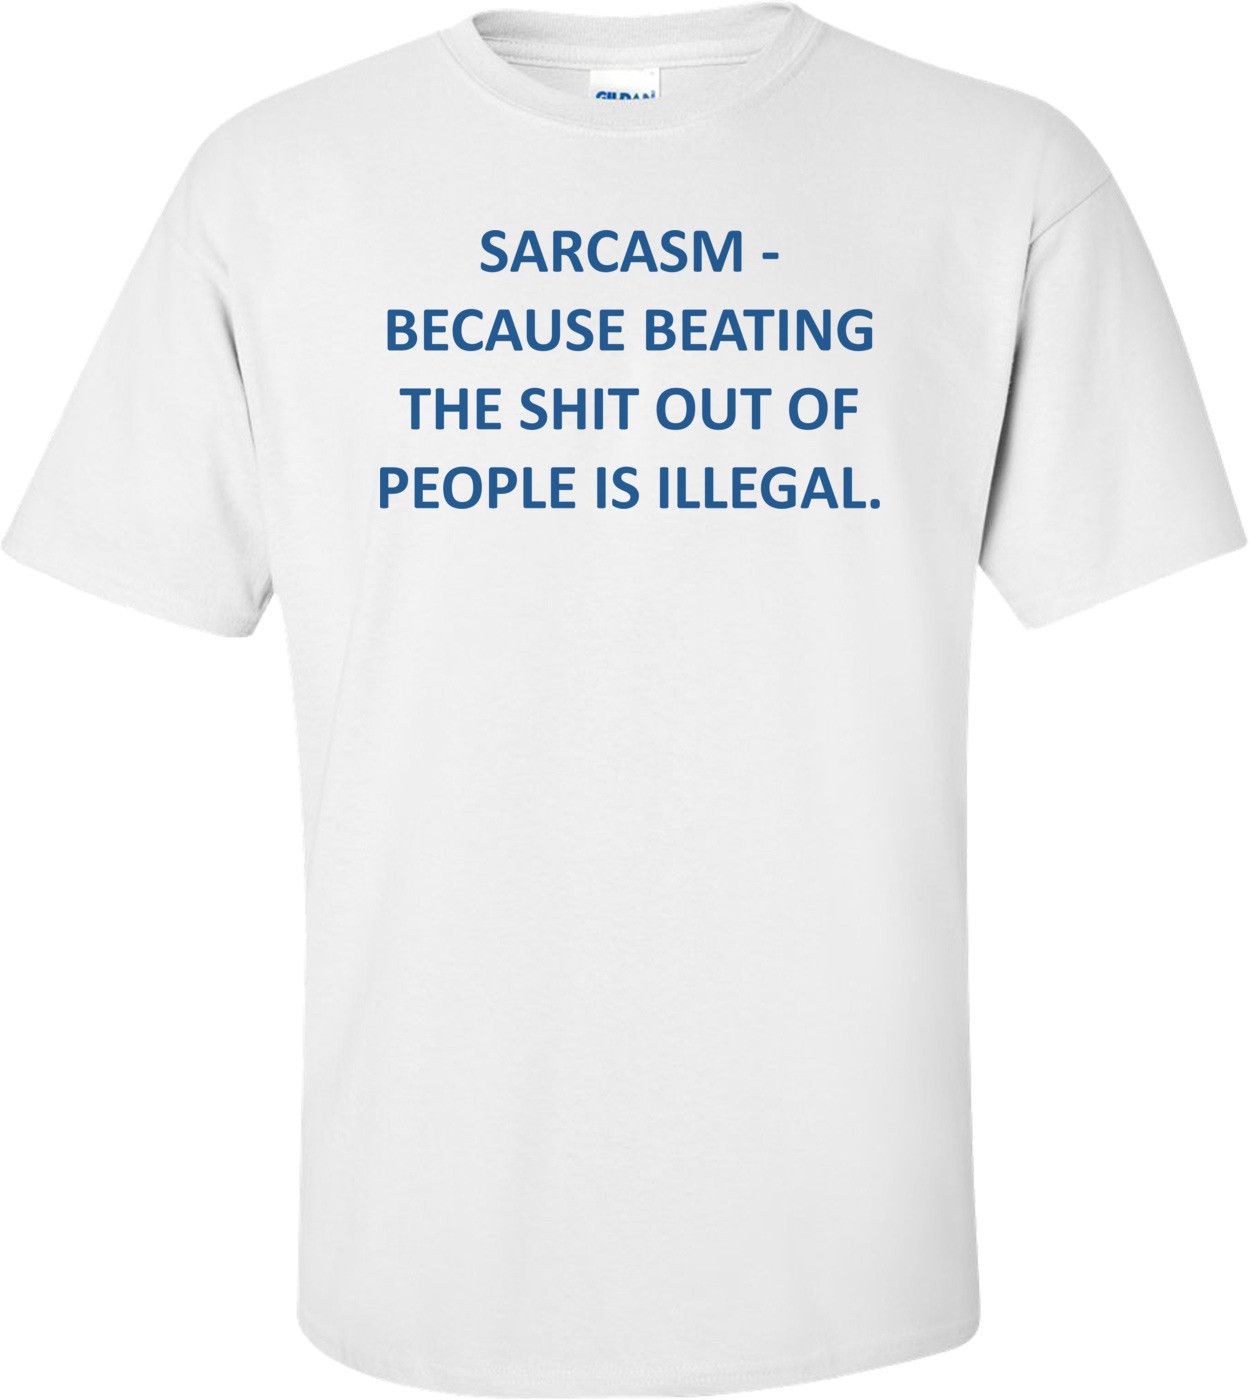 SARCASM - BECAUSE BEATING THE SHIT OUT OF PEOPLE IS ILLEGAL. Shirt